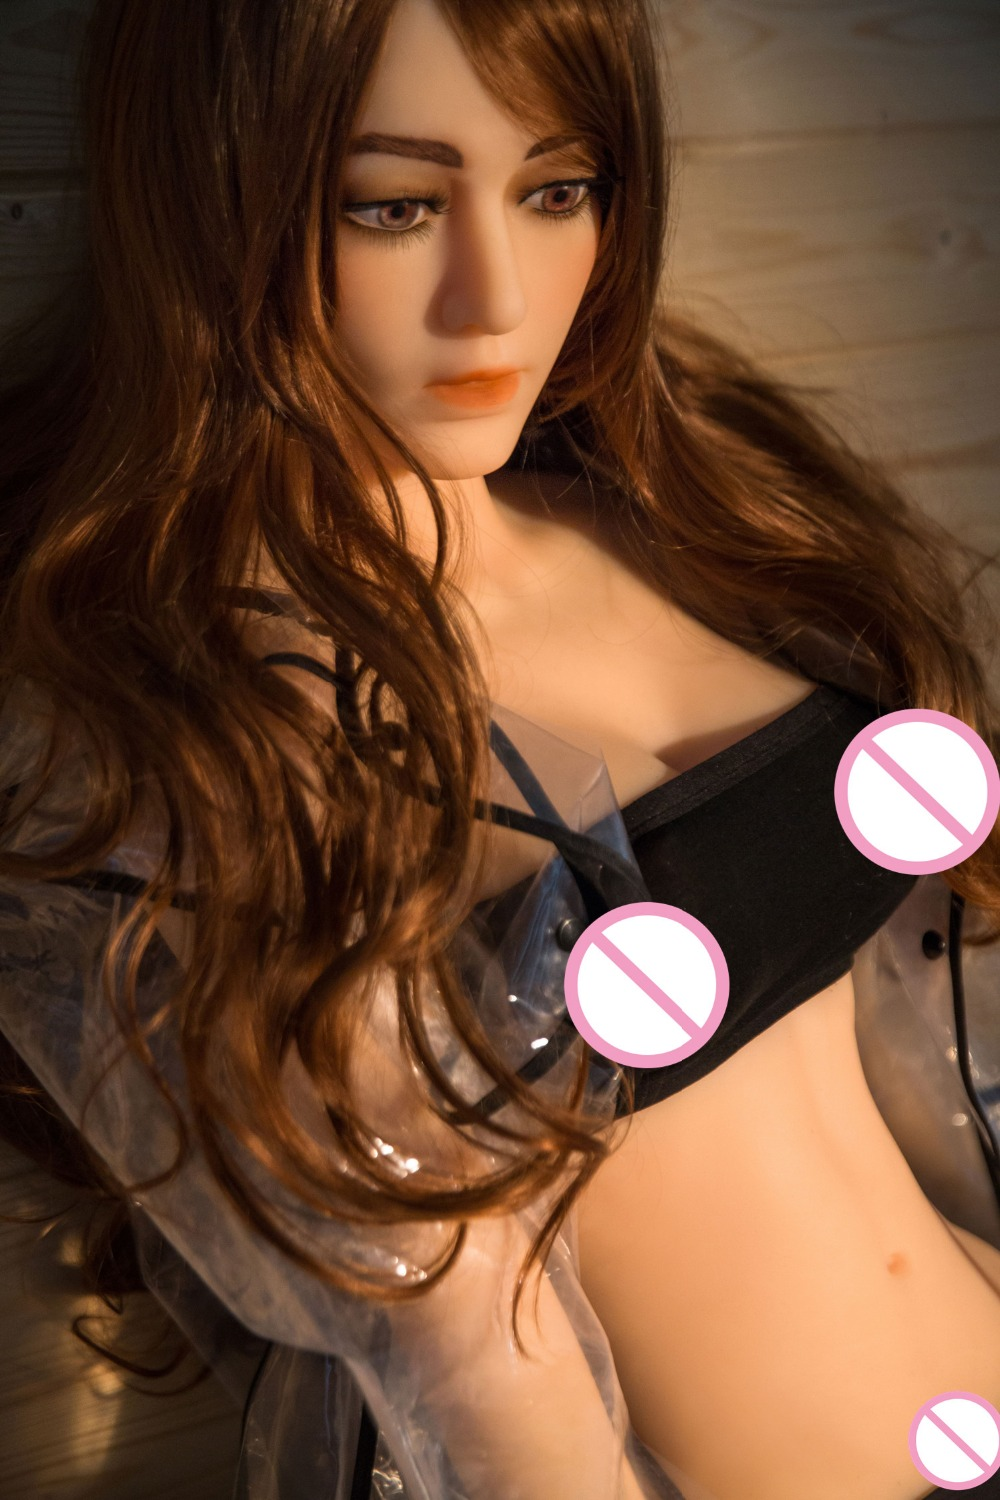 Buy Japanese life sex dolls, adult products men, silicone breasts vagina, sex dolls size 148 cm.